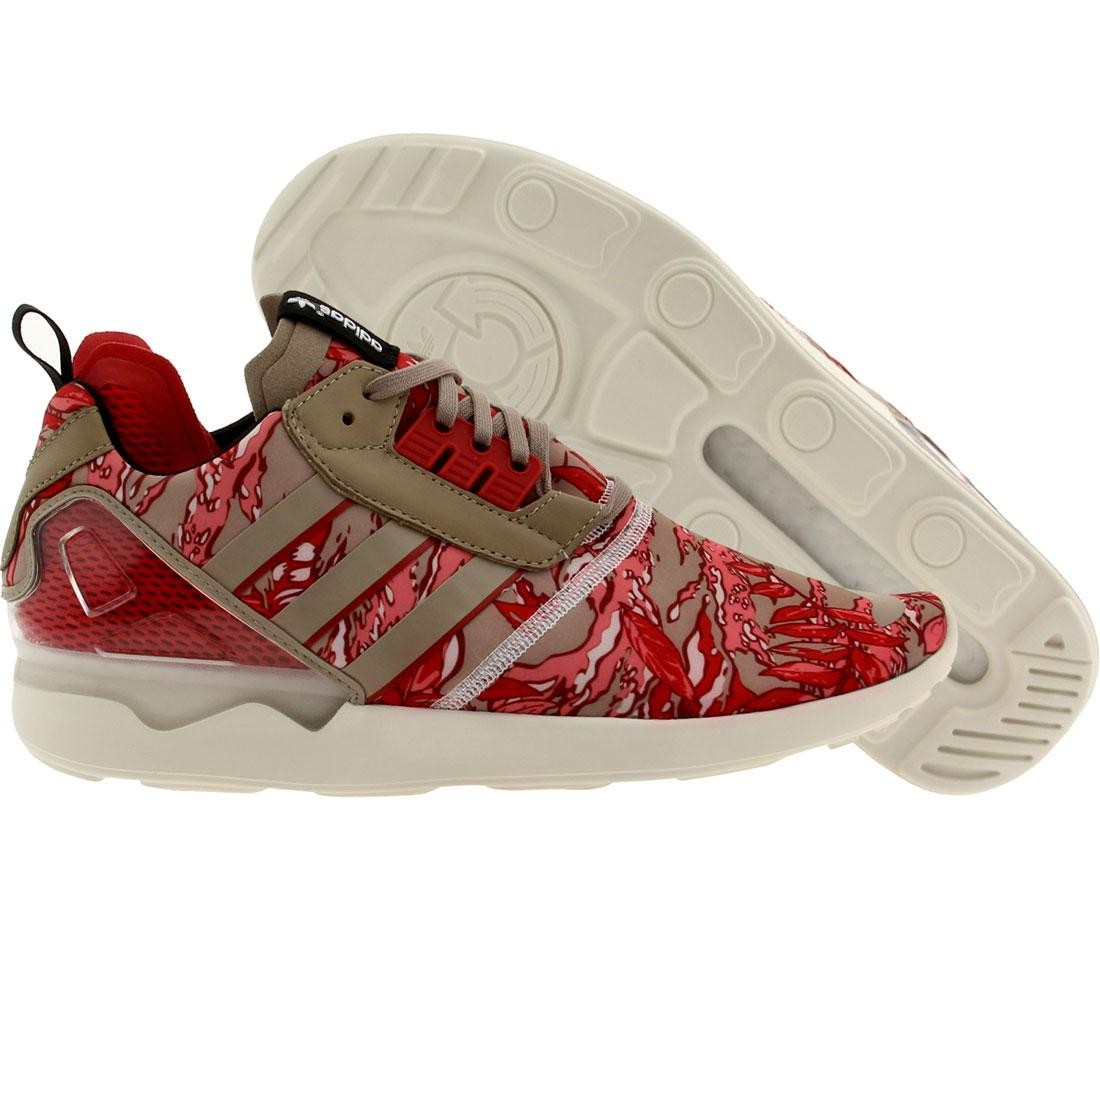 Adidas Men ZX 8000 Boost (pink / red / gray)